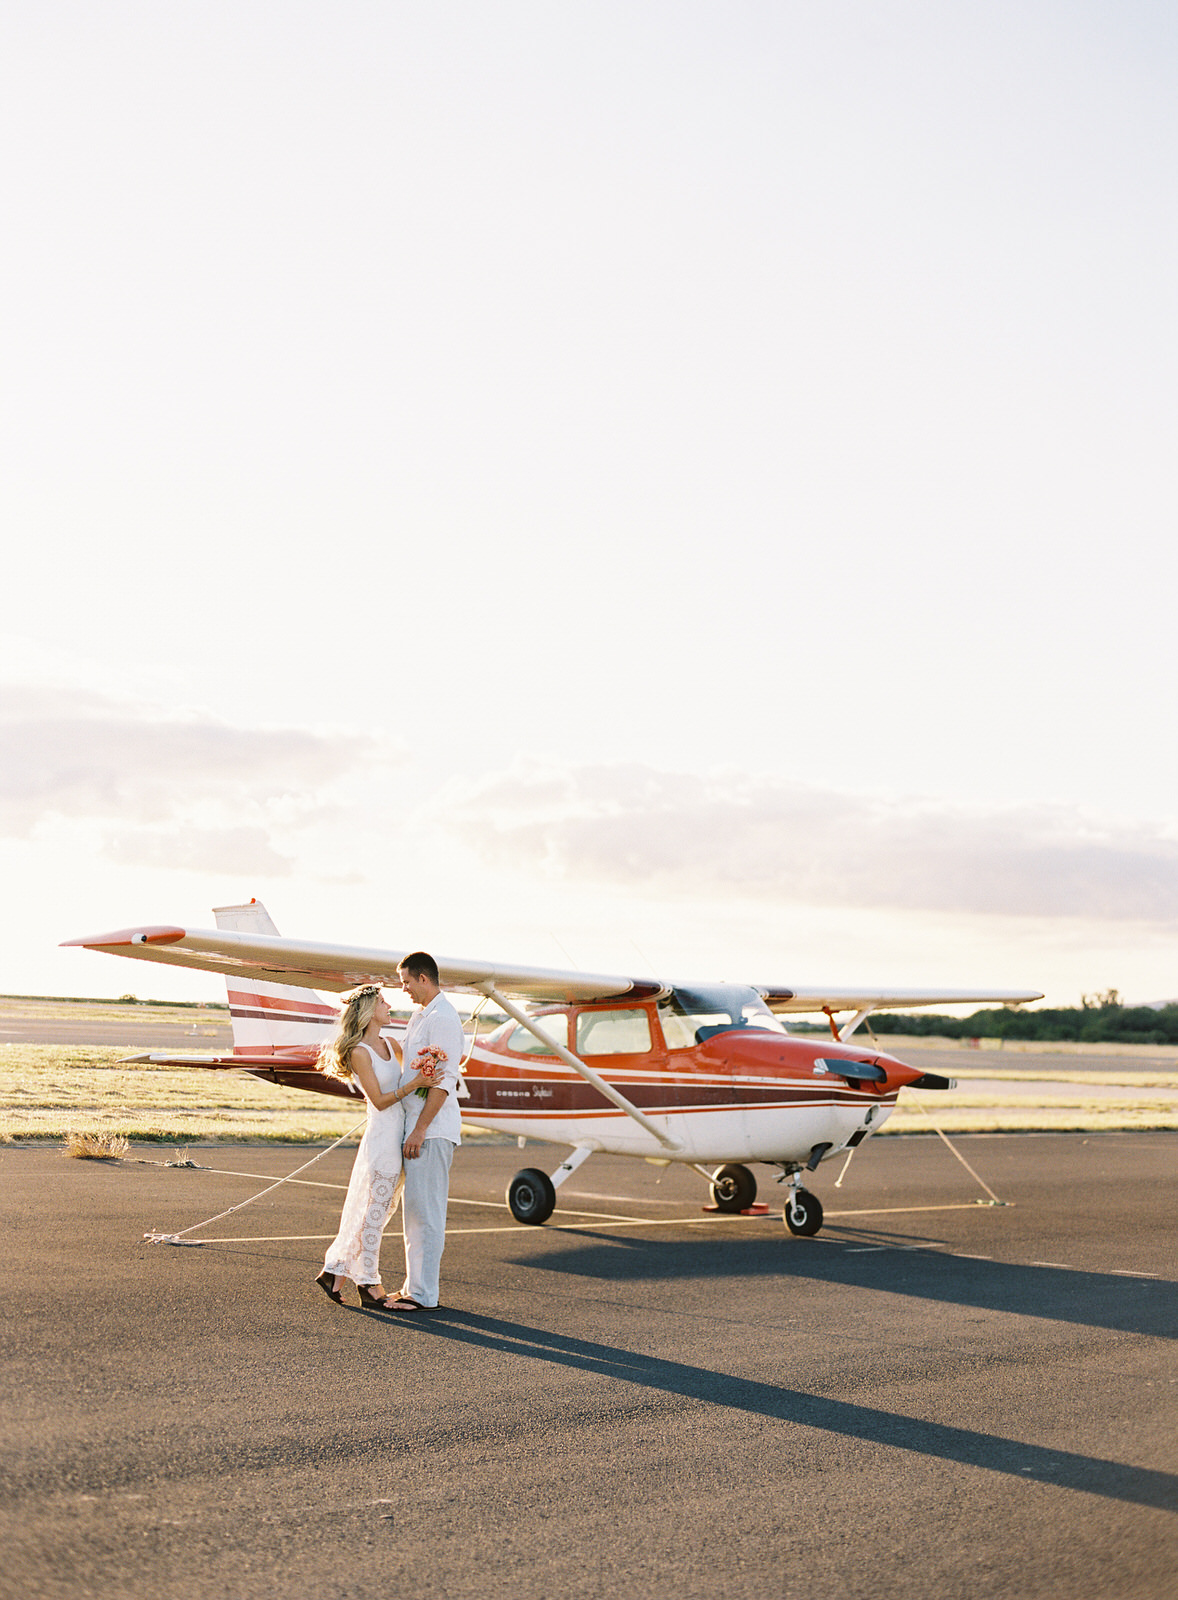 Couple with small plane